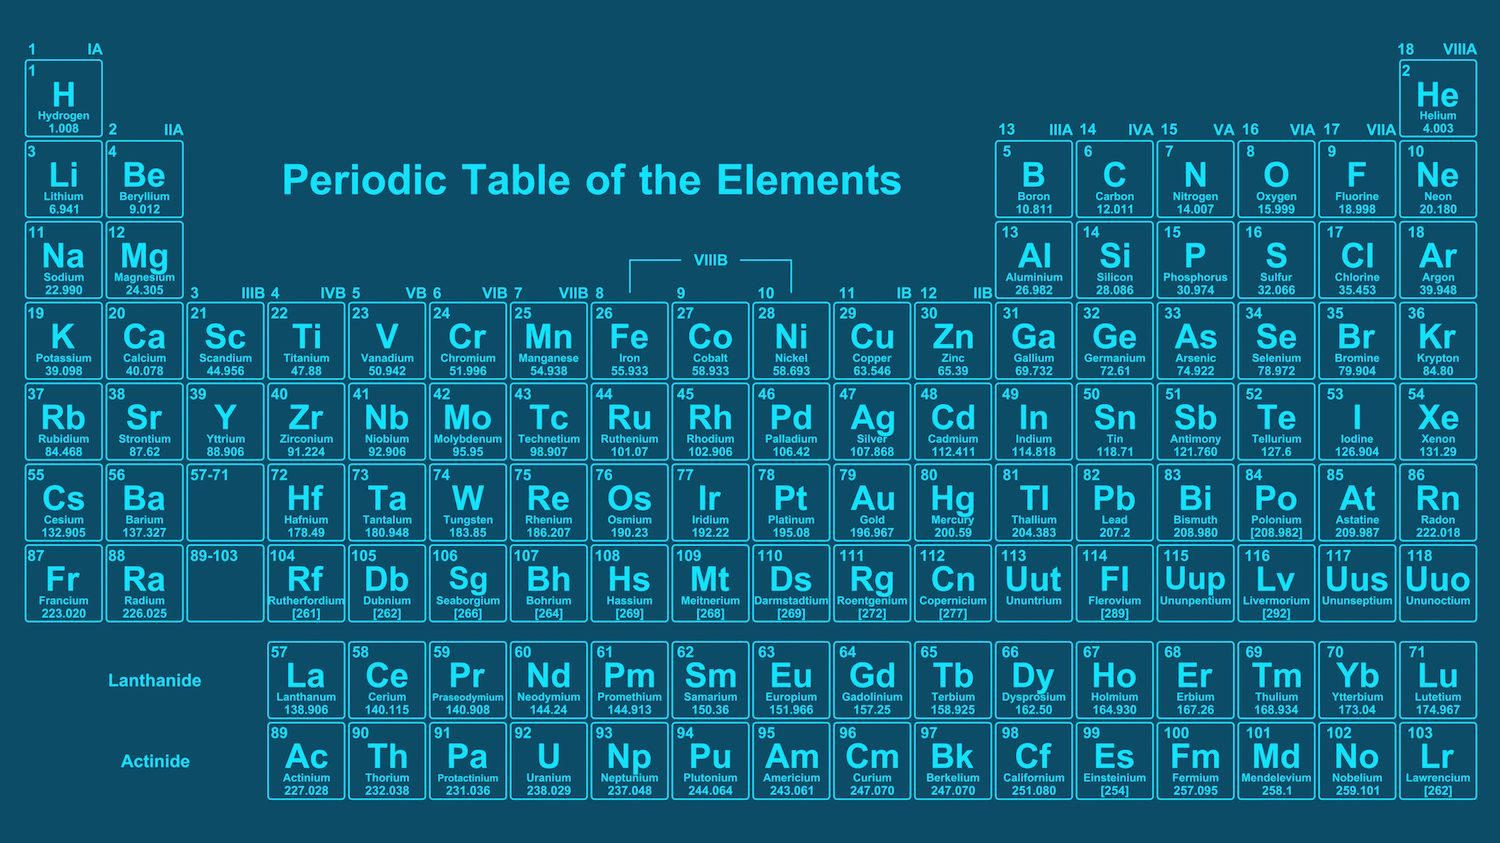 This Interactive Periodic Table Features a Haiku for Each Element - Mental Floss